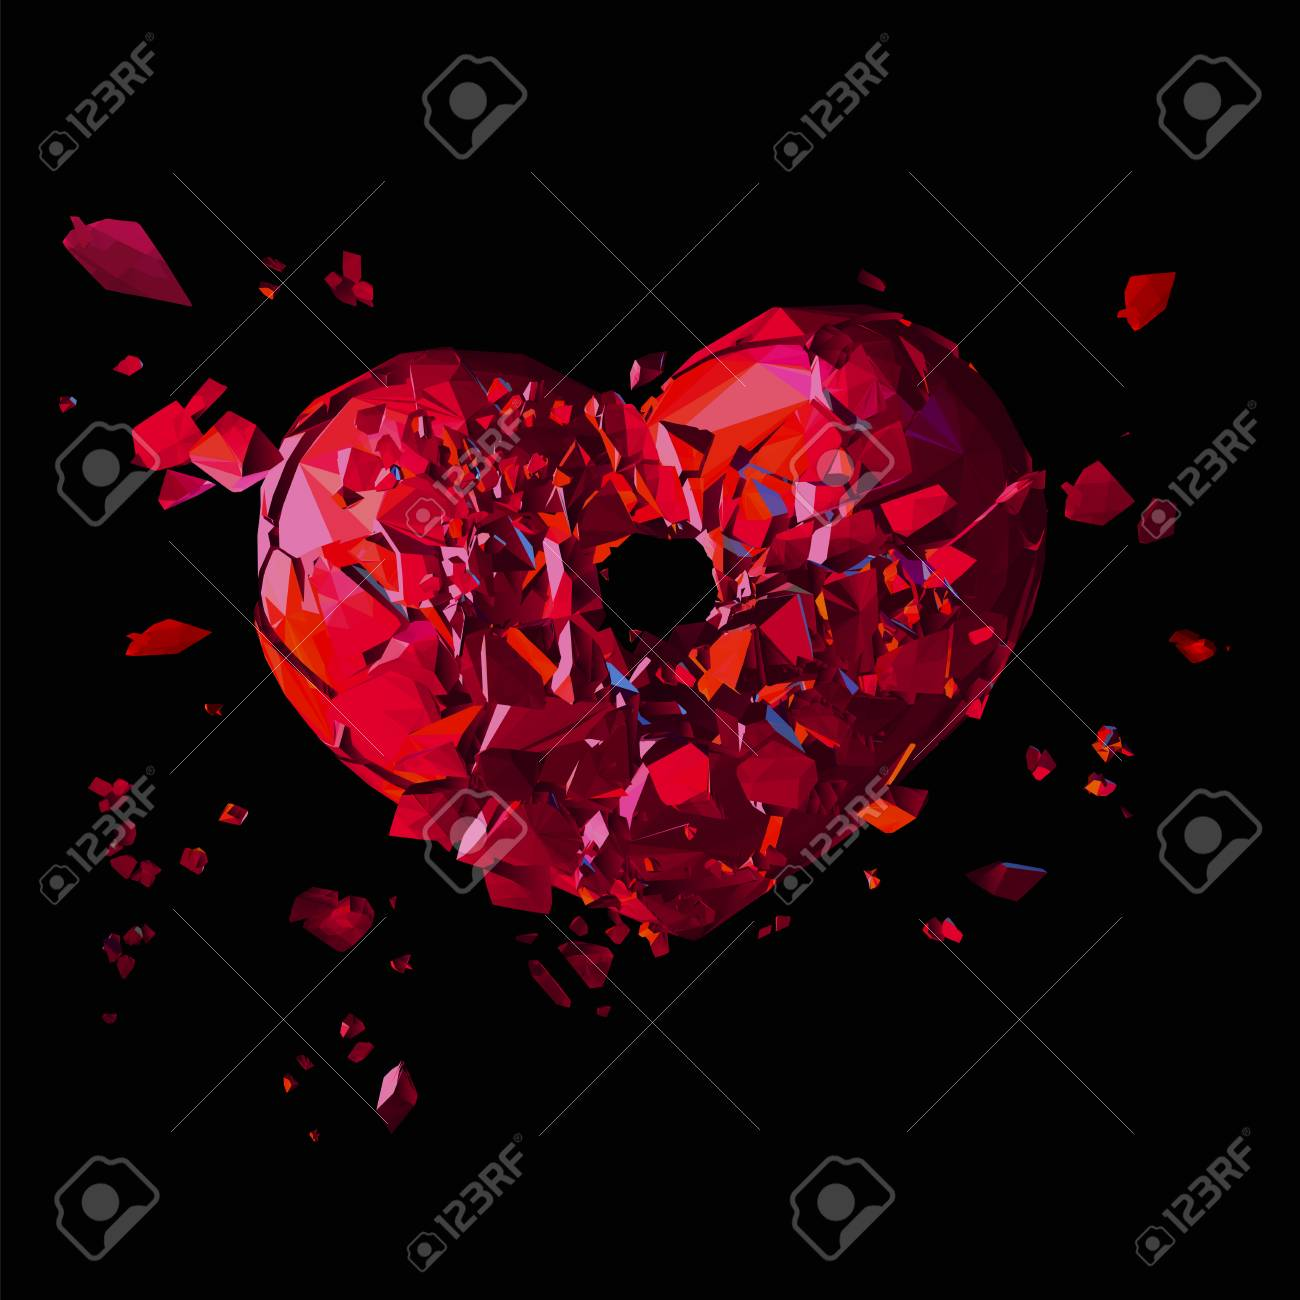 Polygonal Broken Heart With Shot Hole In Action On Dark Background Royalty Free Cliparts Vectors And Stock Illustration Image 71346369